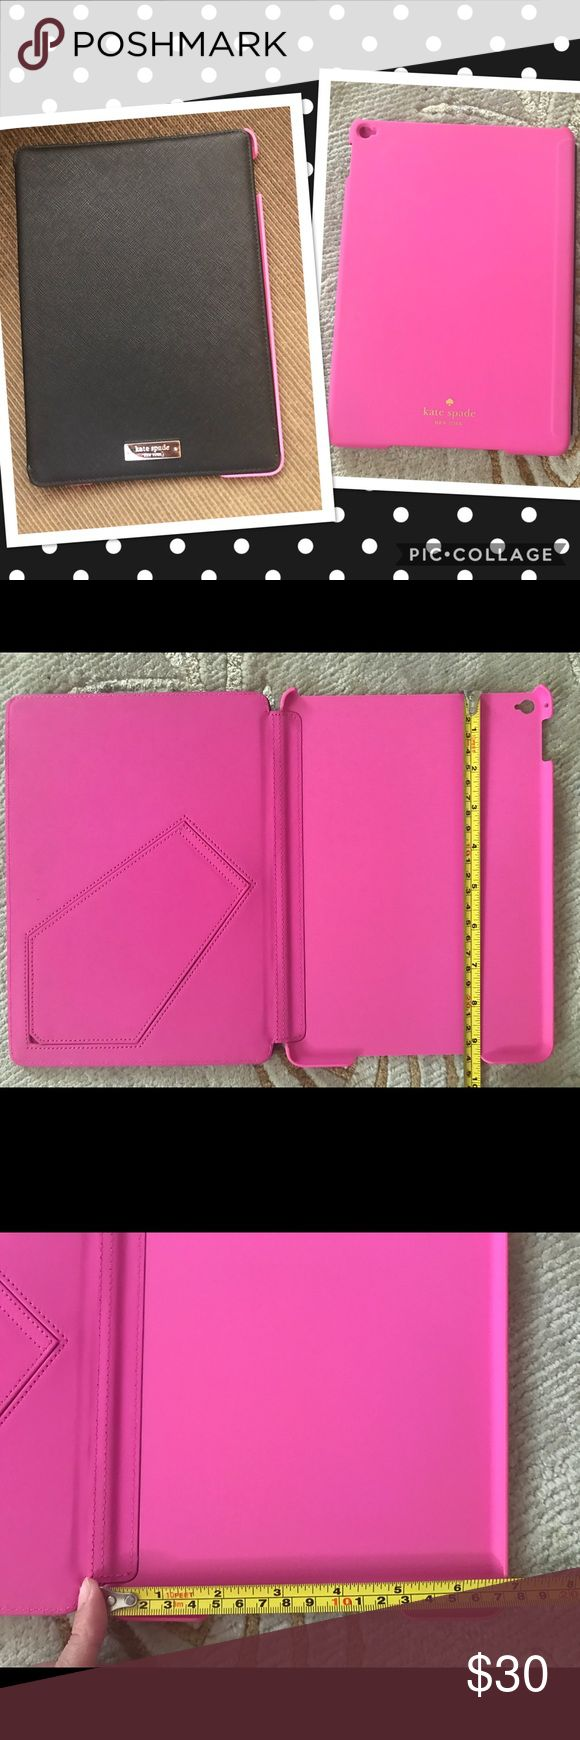 Kate spade iPad case New bought here on Posh. Bought it for my iPad 2 but the case was too small. kate spade Accessories Tablet Cases